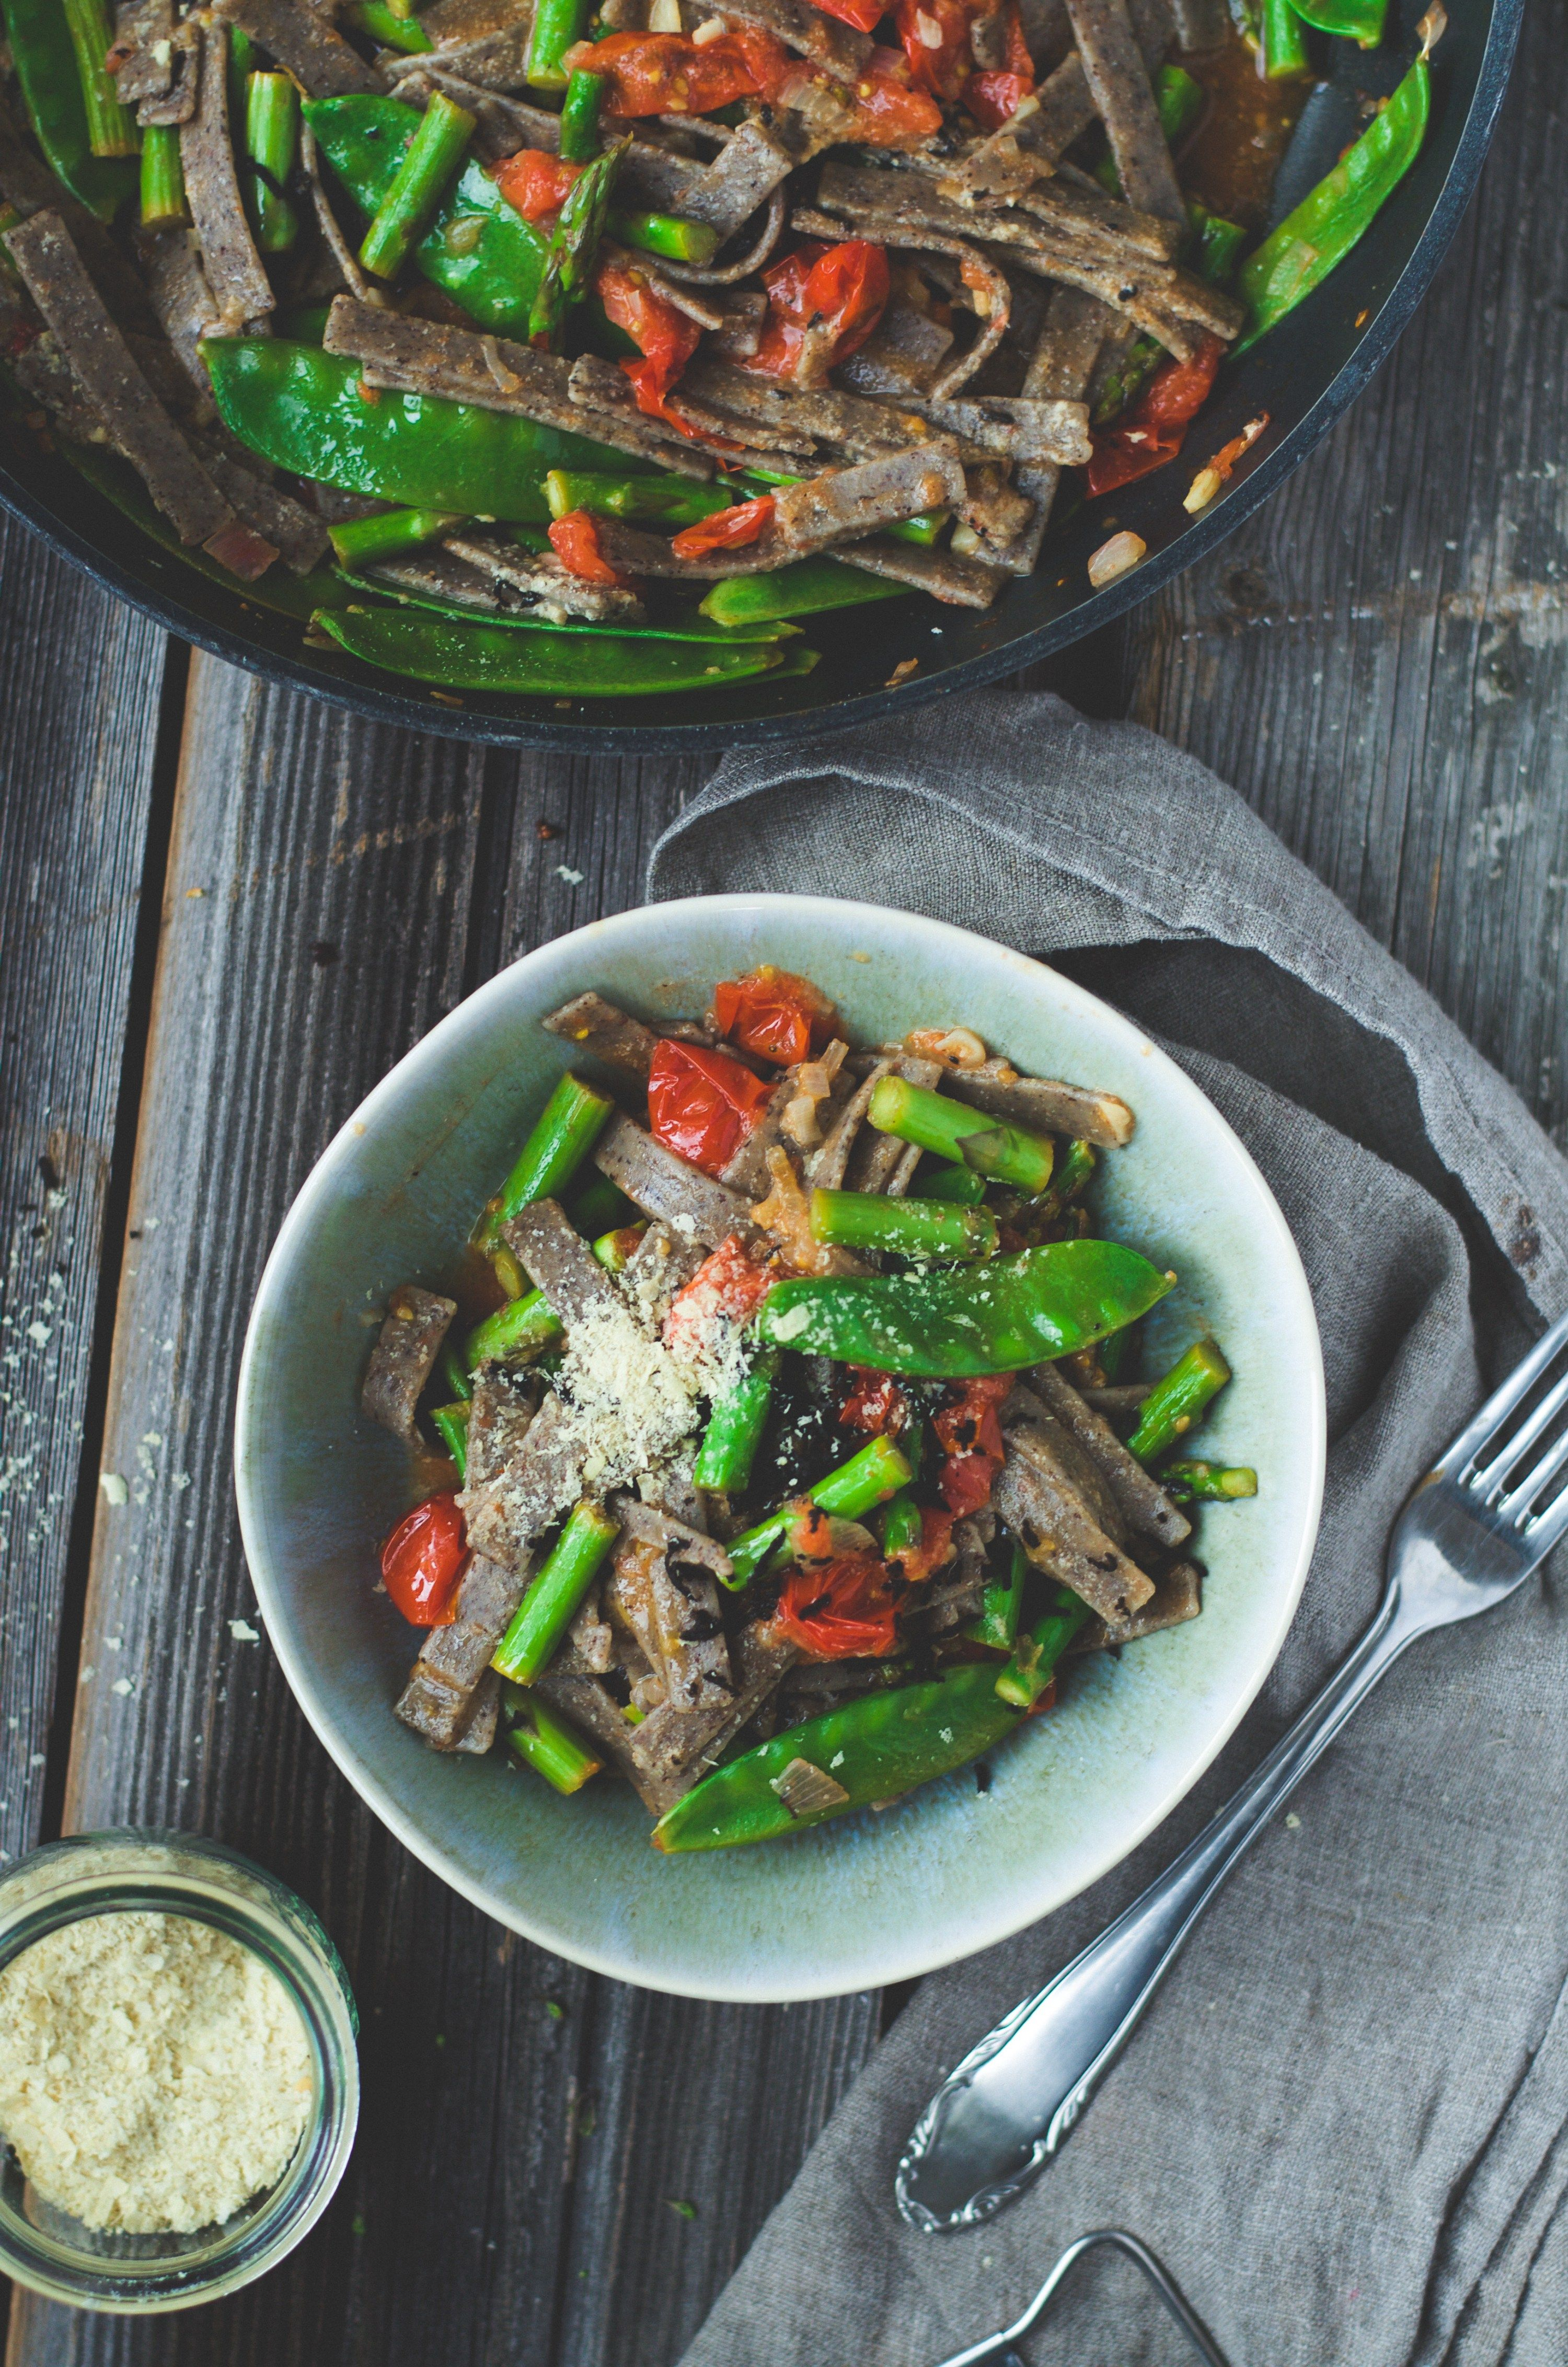 Truffle pizzoccheri with spring veggies real food clean food find this pin and more on real food clean food recipes forumfinder Choice Image